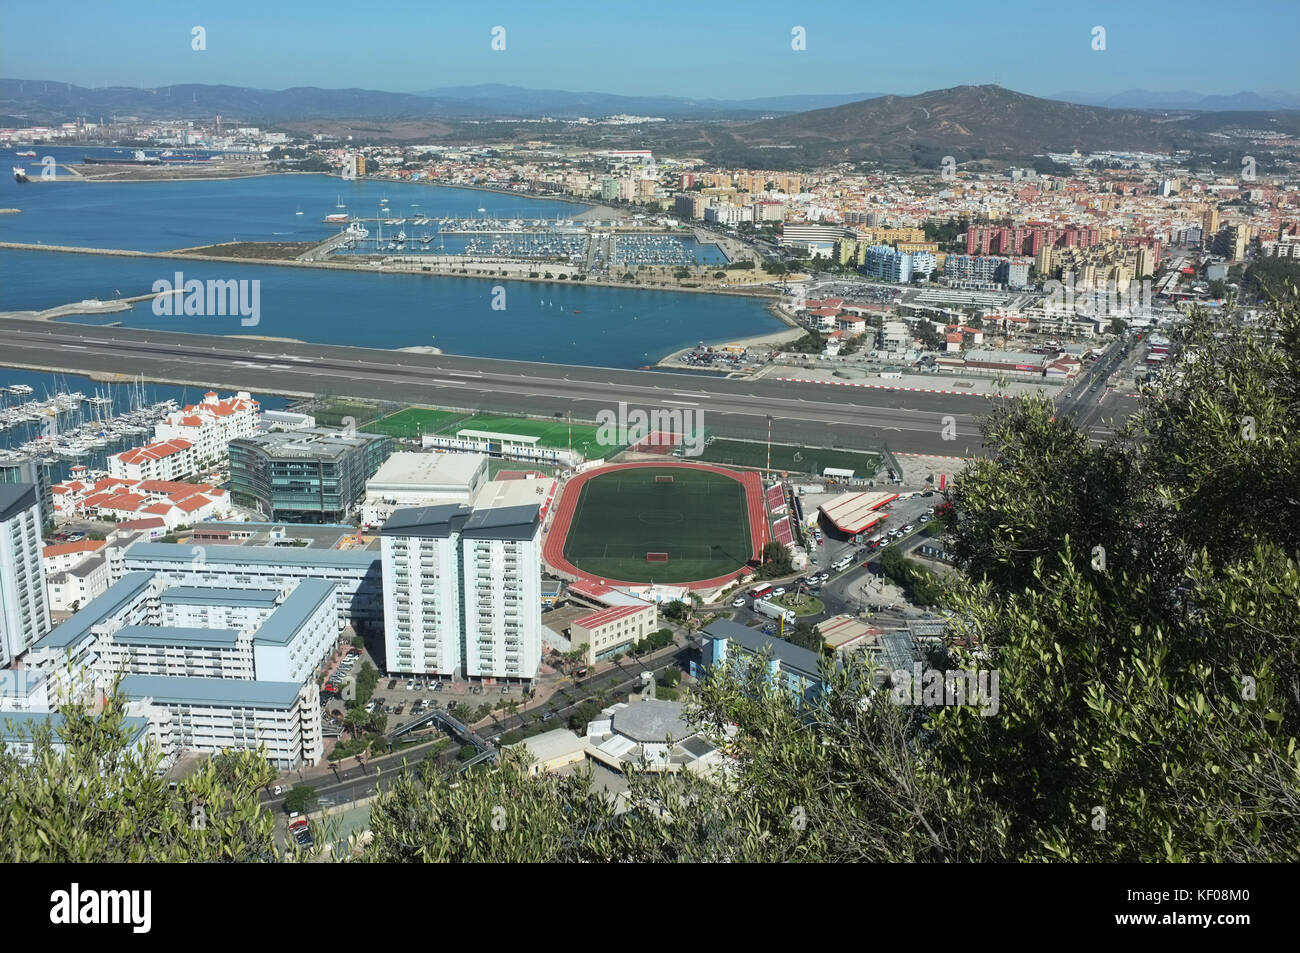 View of La Linea de la Conception, Victoria Stadium and Gibraltar airport from the Moorish castle, Gibraltar, September - Stock Image